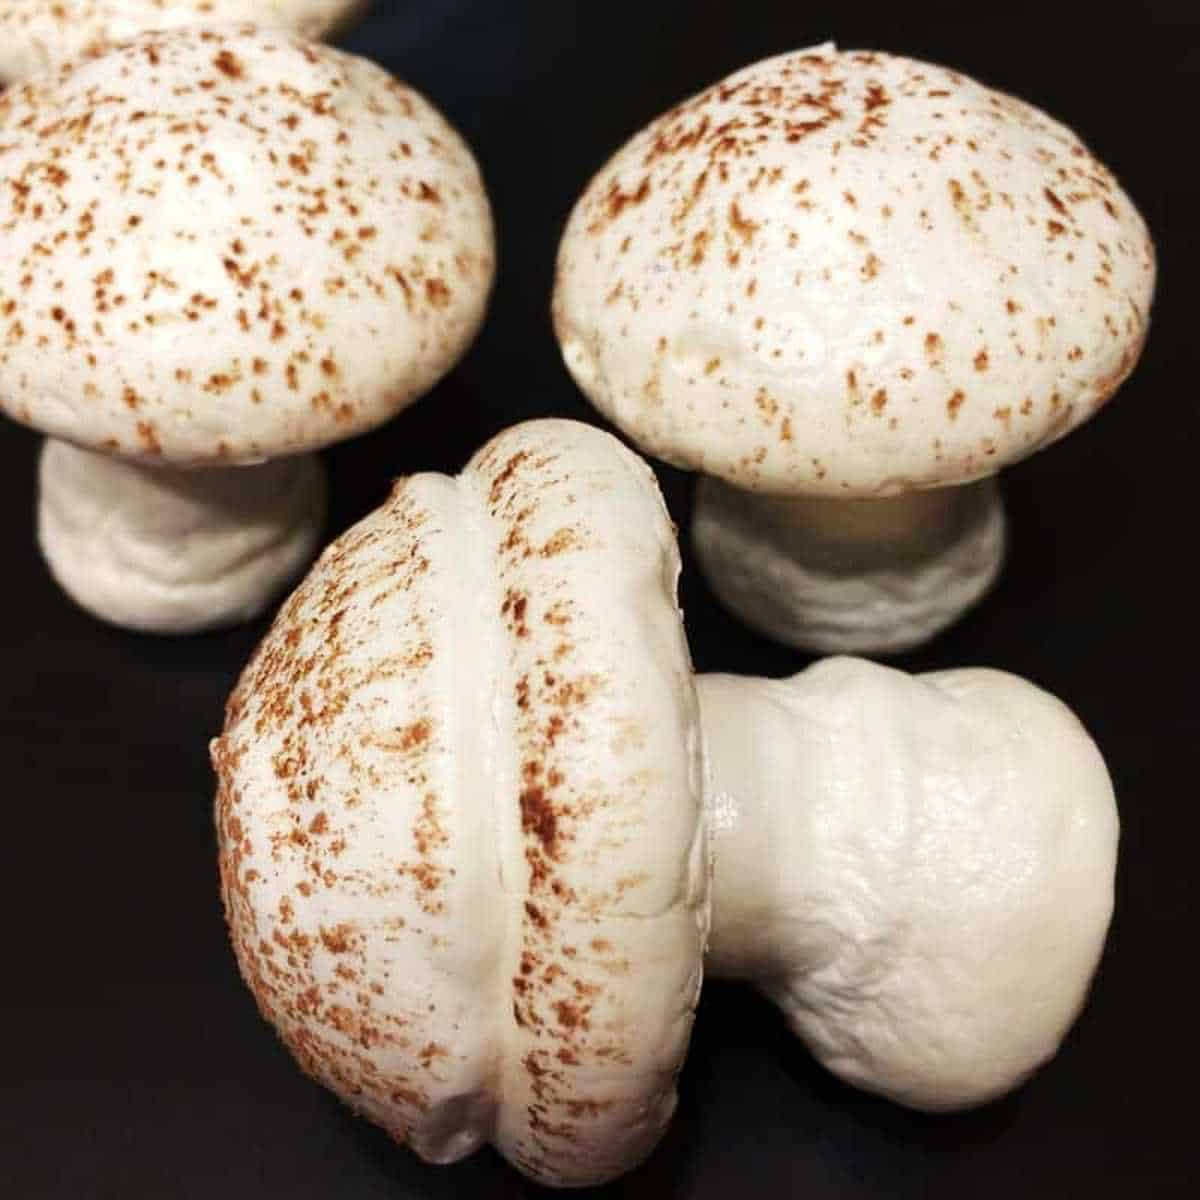 Three meringue mushrooms cookies on a black background